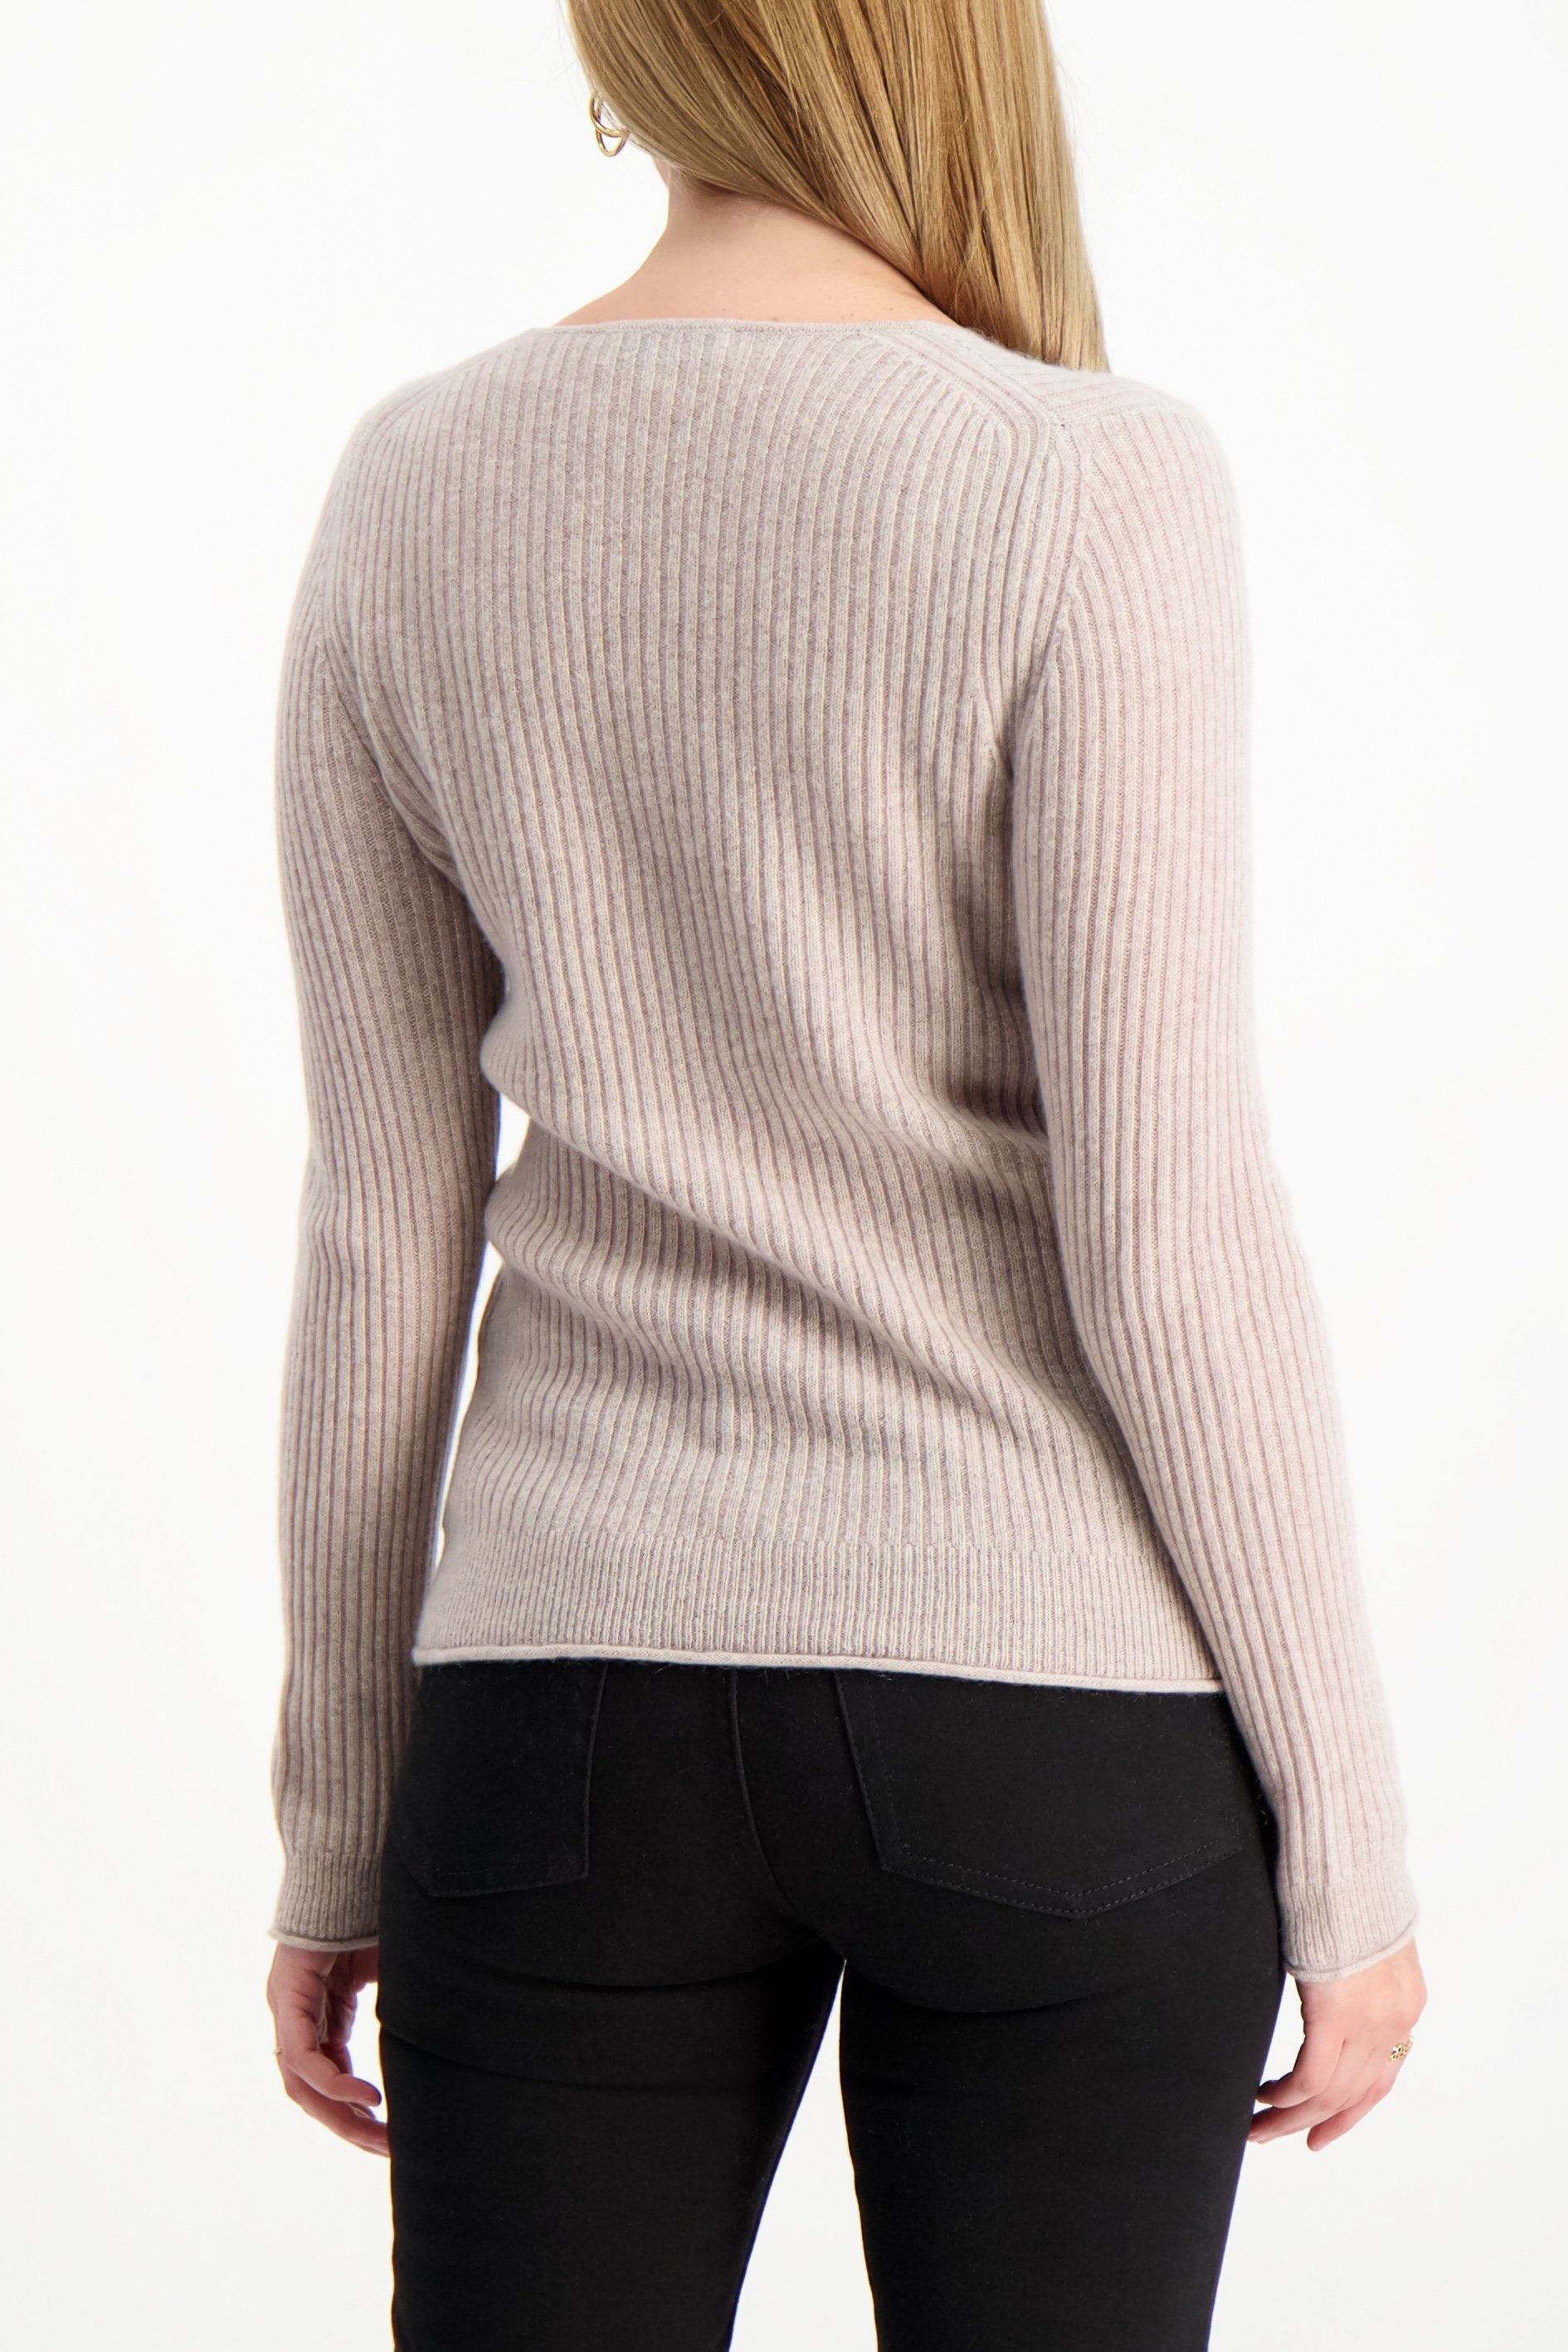 Back Crop Image Of Model Wearing White & Warren Slim Ribbed V Neck Sweater Truffle Heather